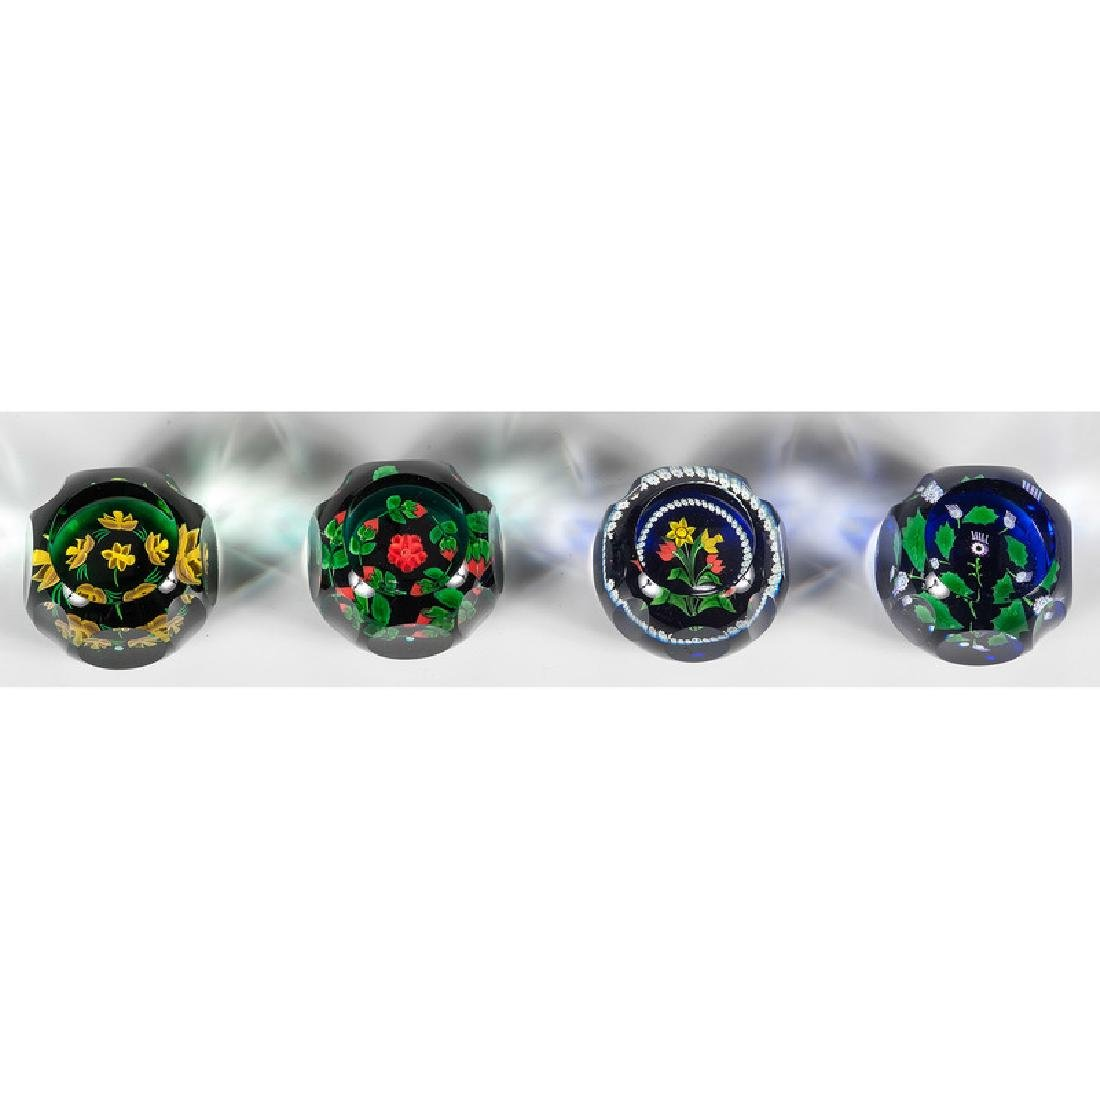 Caithness National Quartet Paperweights and Perfume - 2